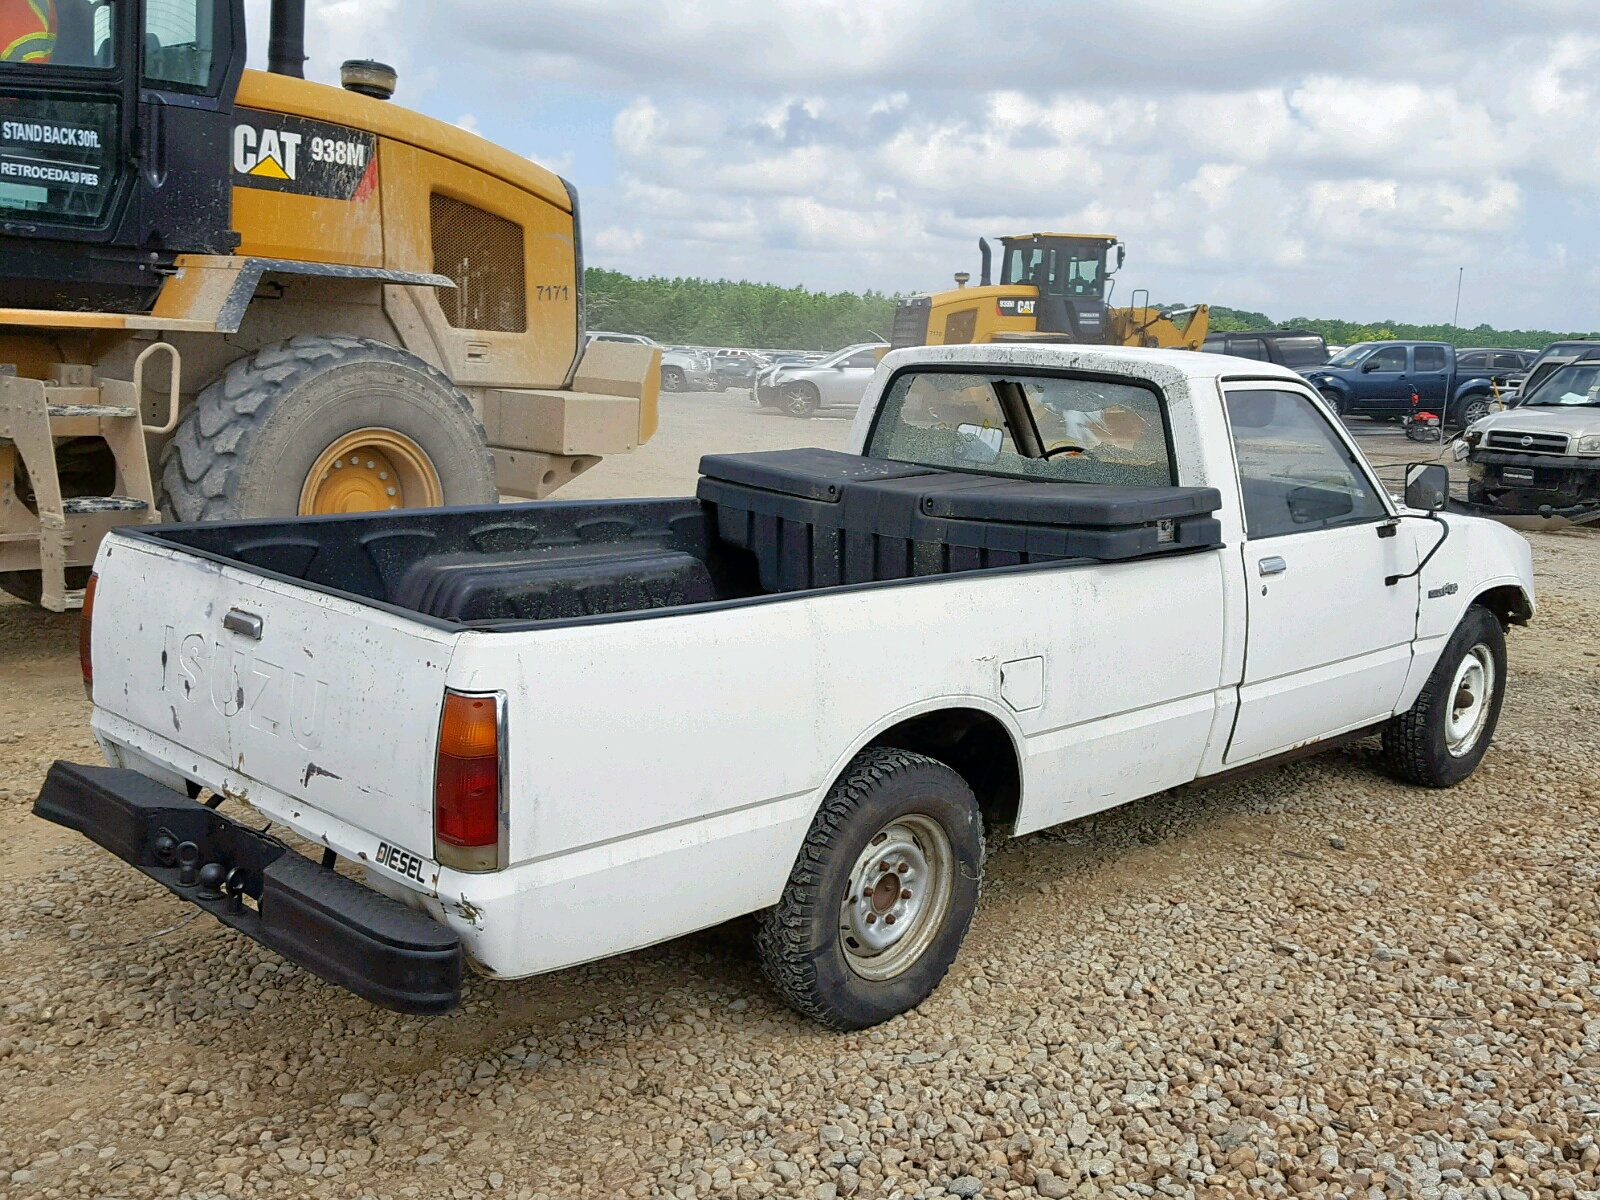 hight resolution of  jaacl14s9f0713355 1985 isuzu pup long b 2 2l rear view jaacl14s9f0713355